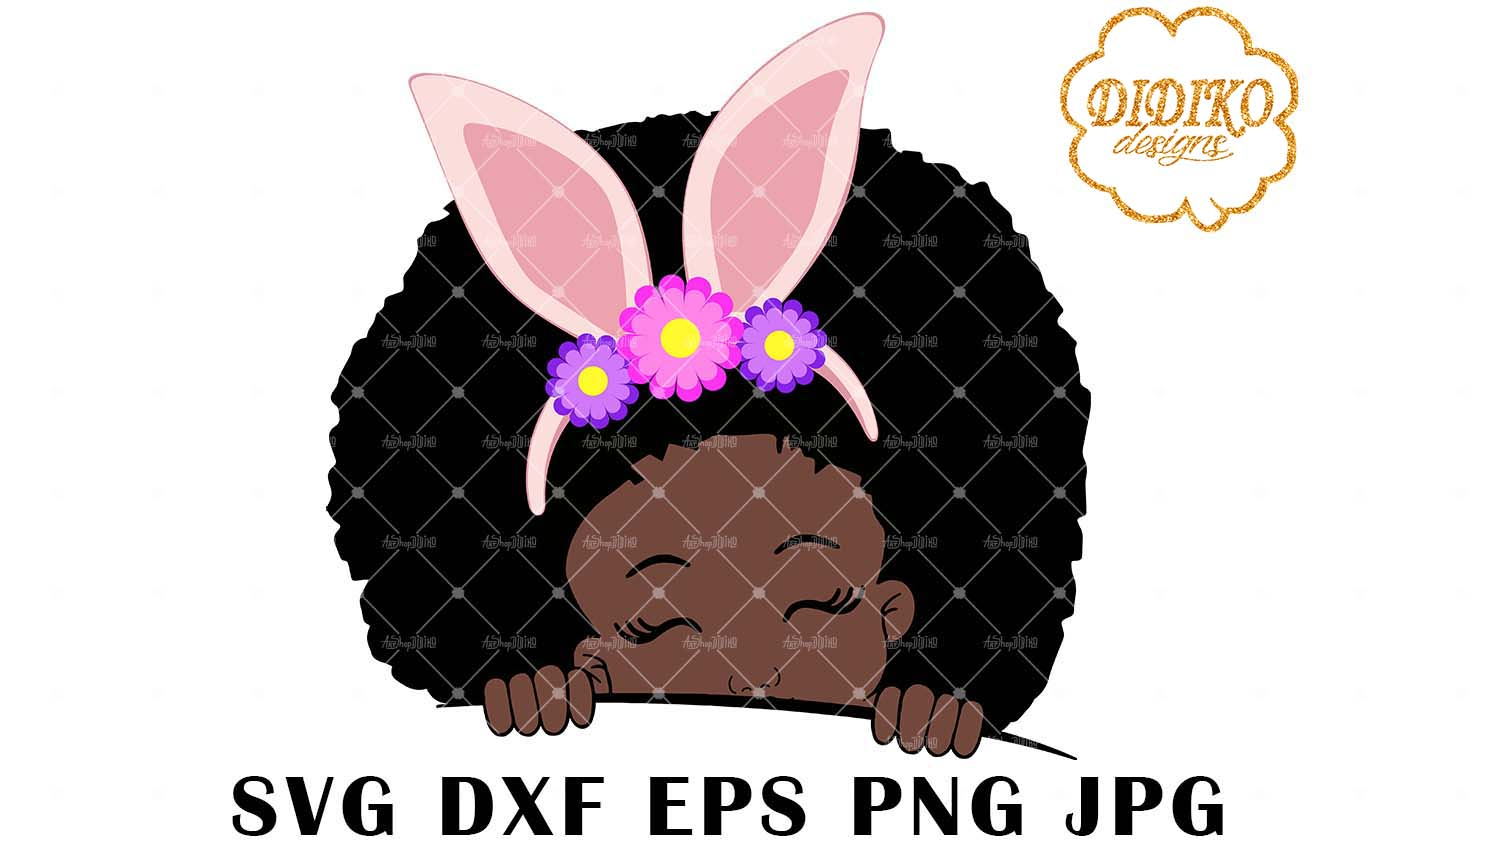 DIDIKO designs Afro Girl Easter Peek a Boo SVG